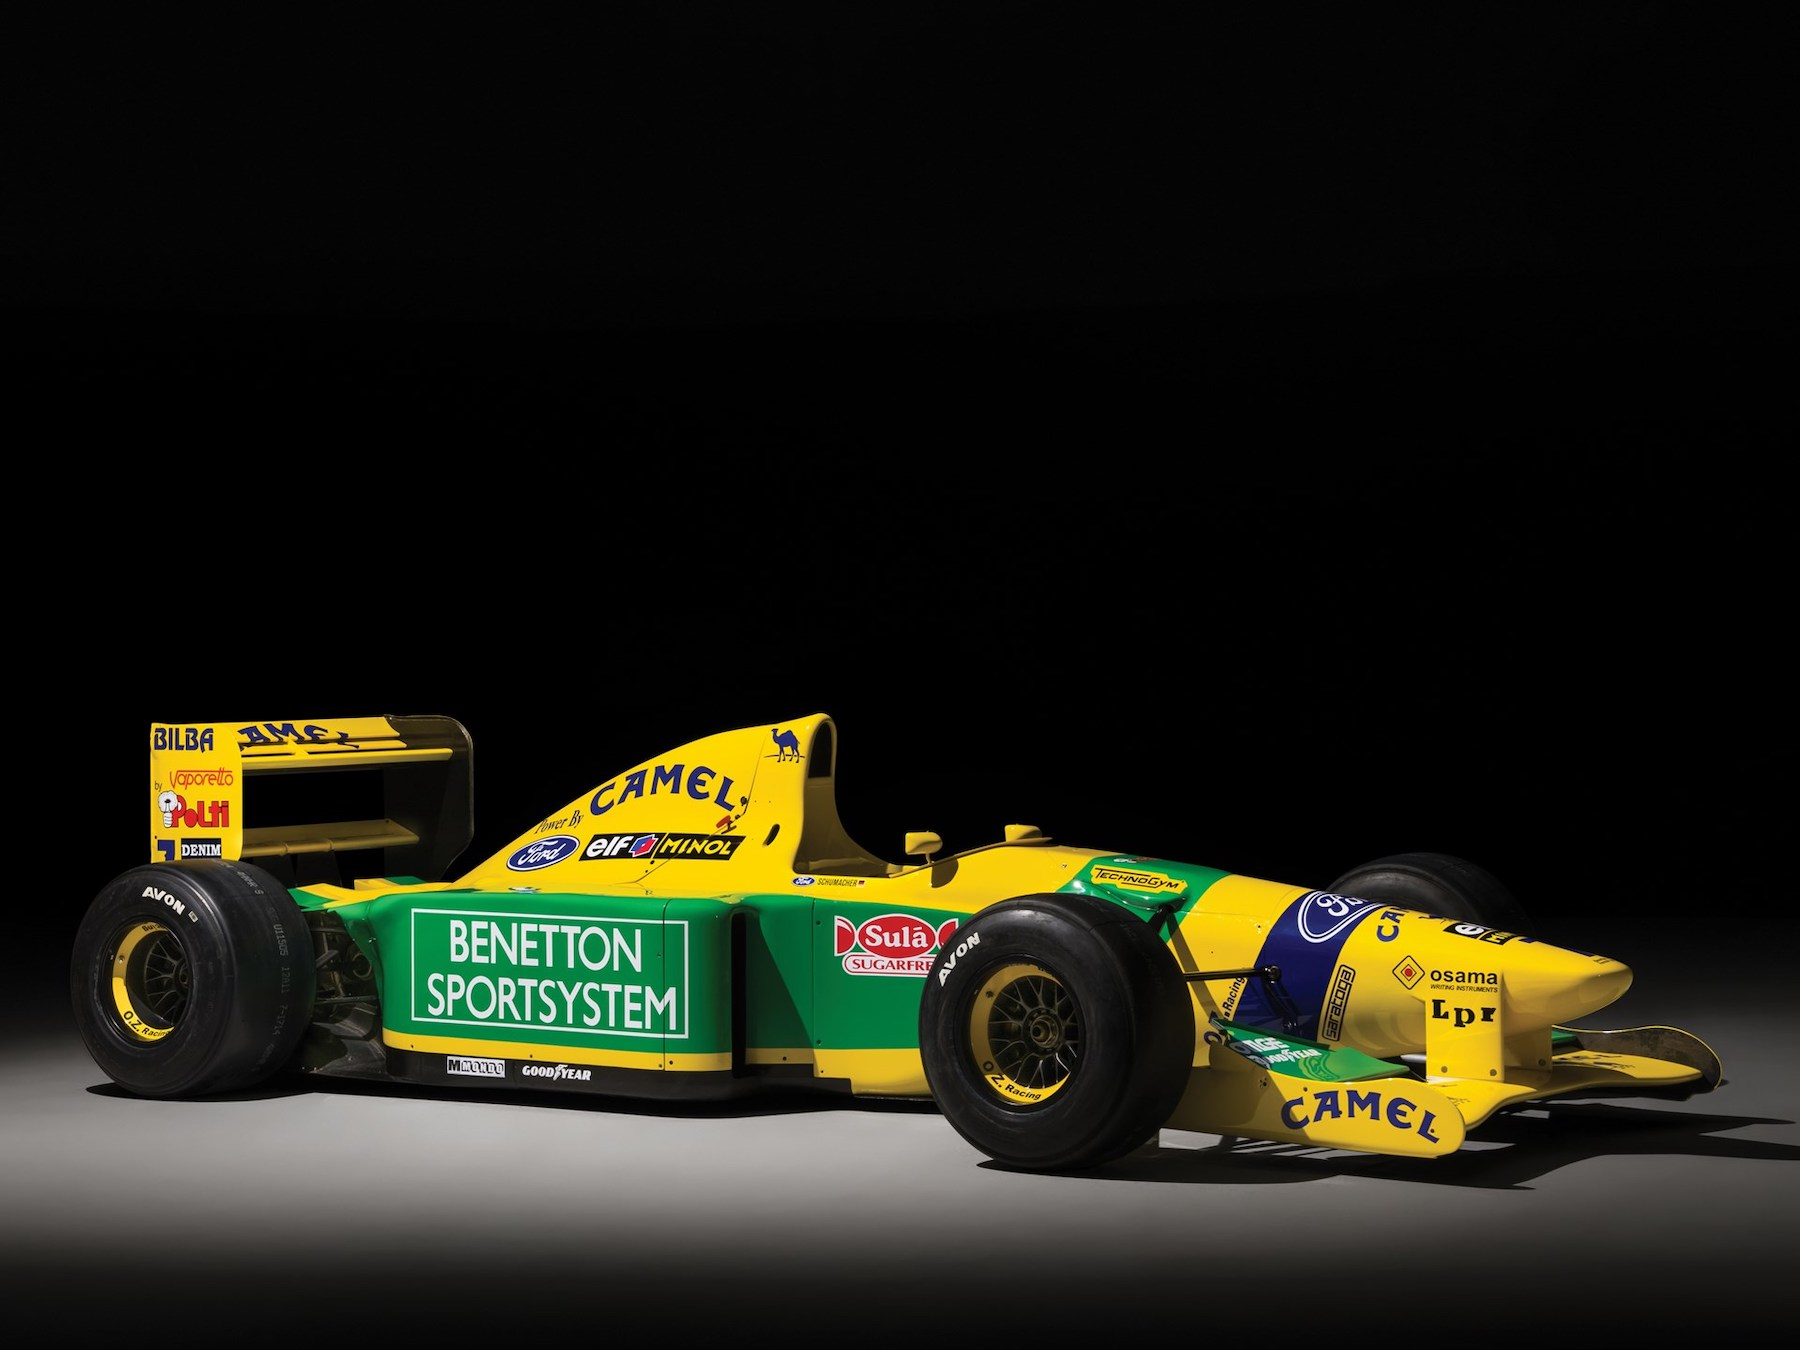 1992 Benetton B192 Website 2.jpg